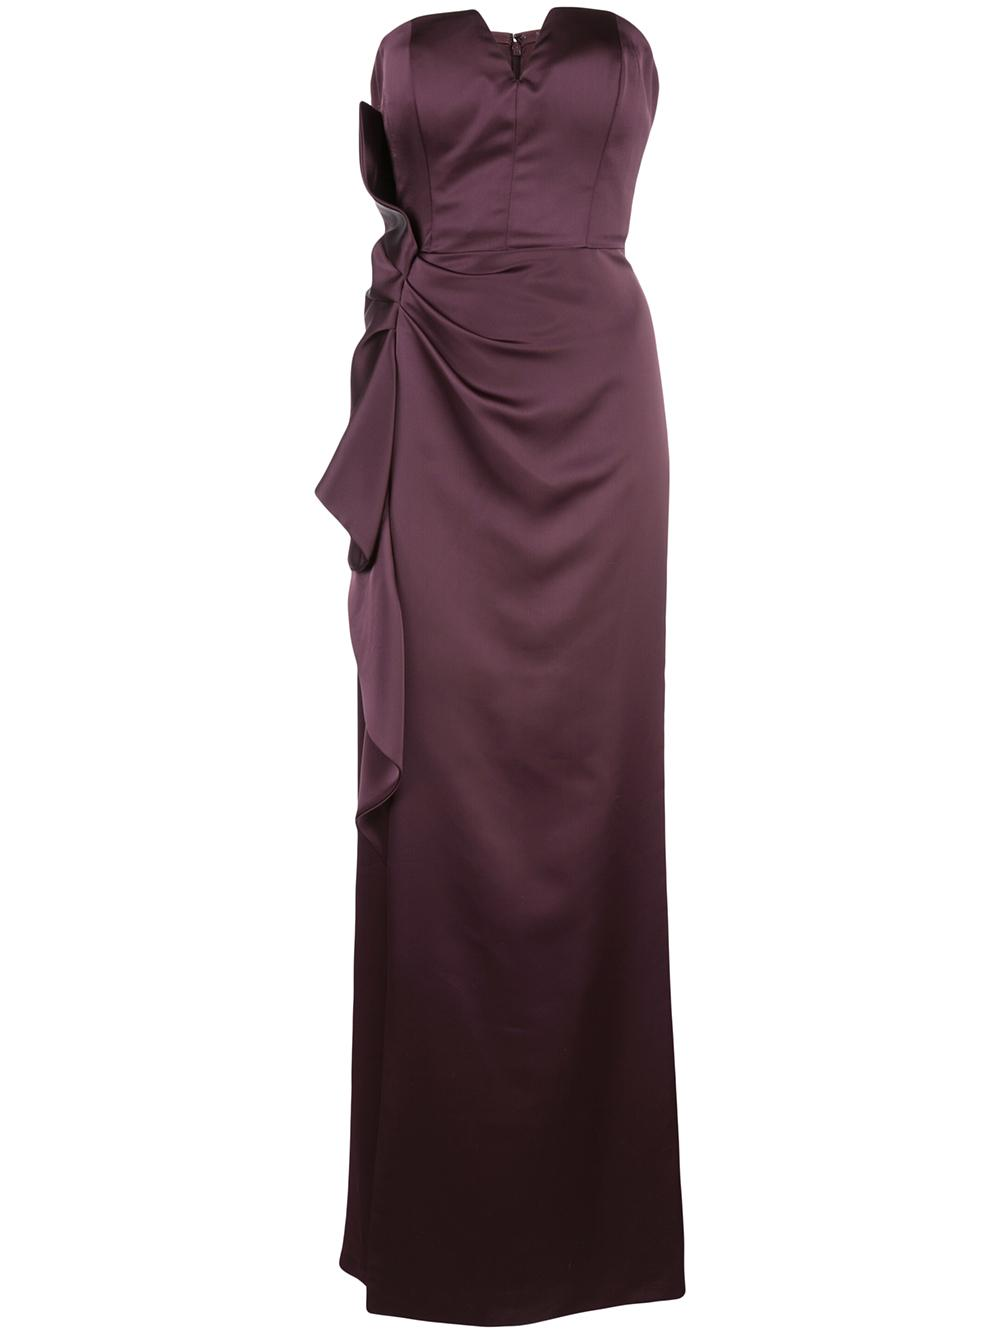 Strapless Long Dress Item # MD1E204773